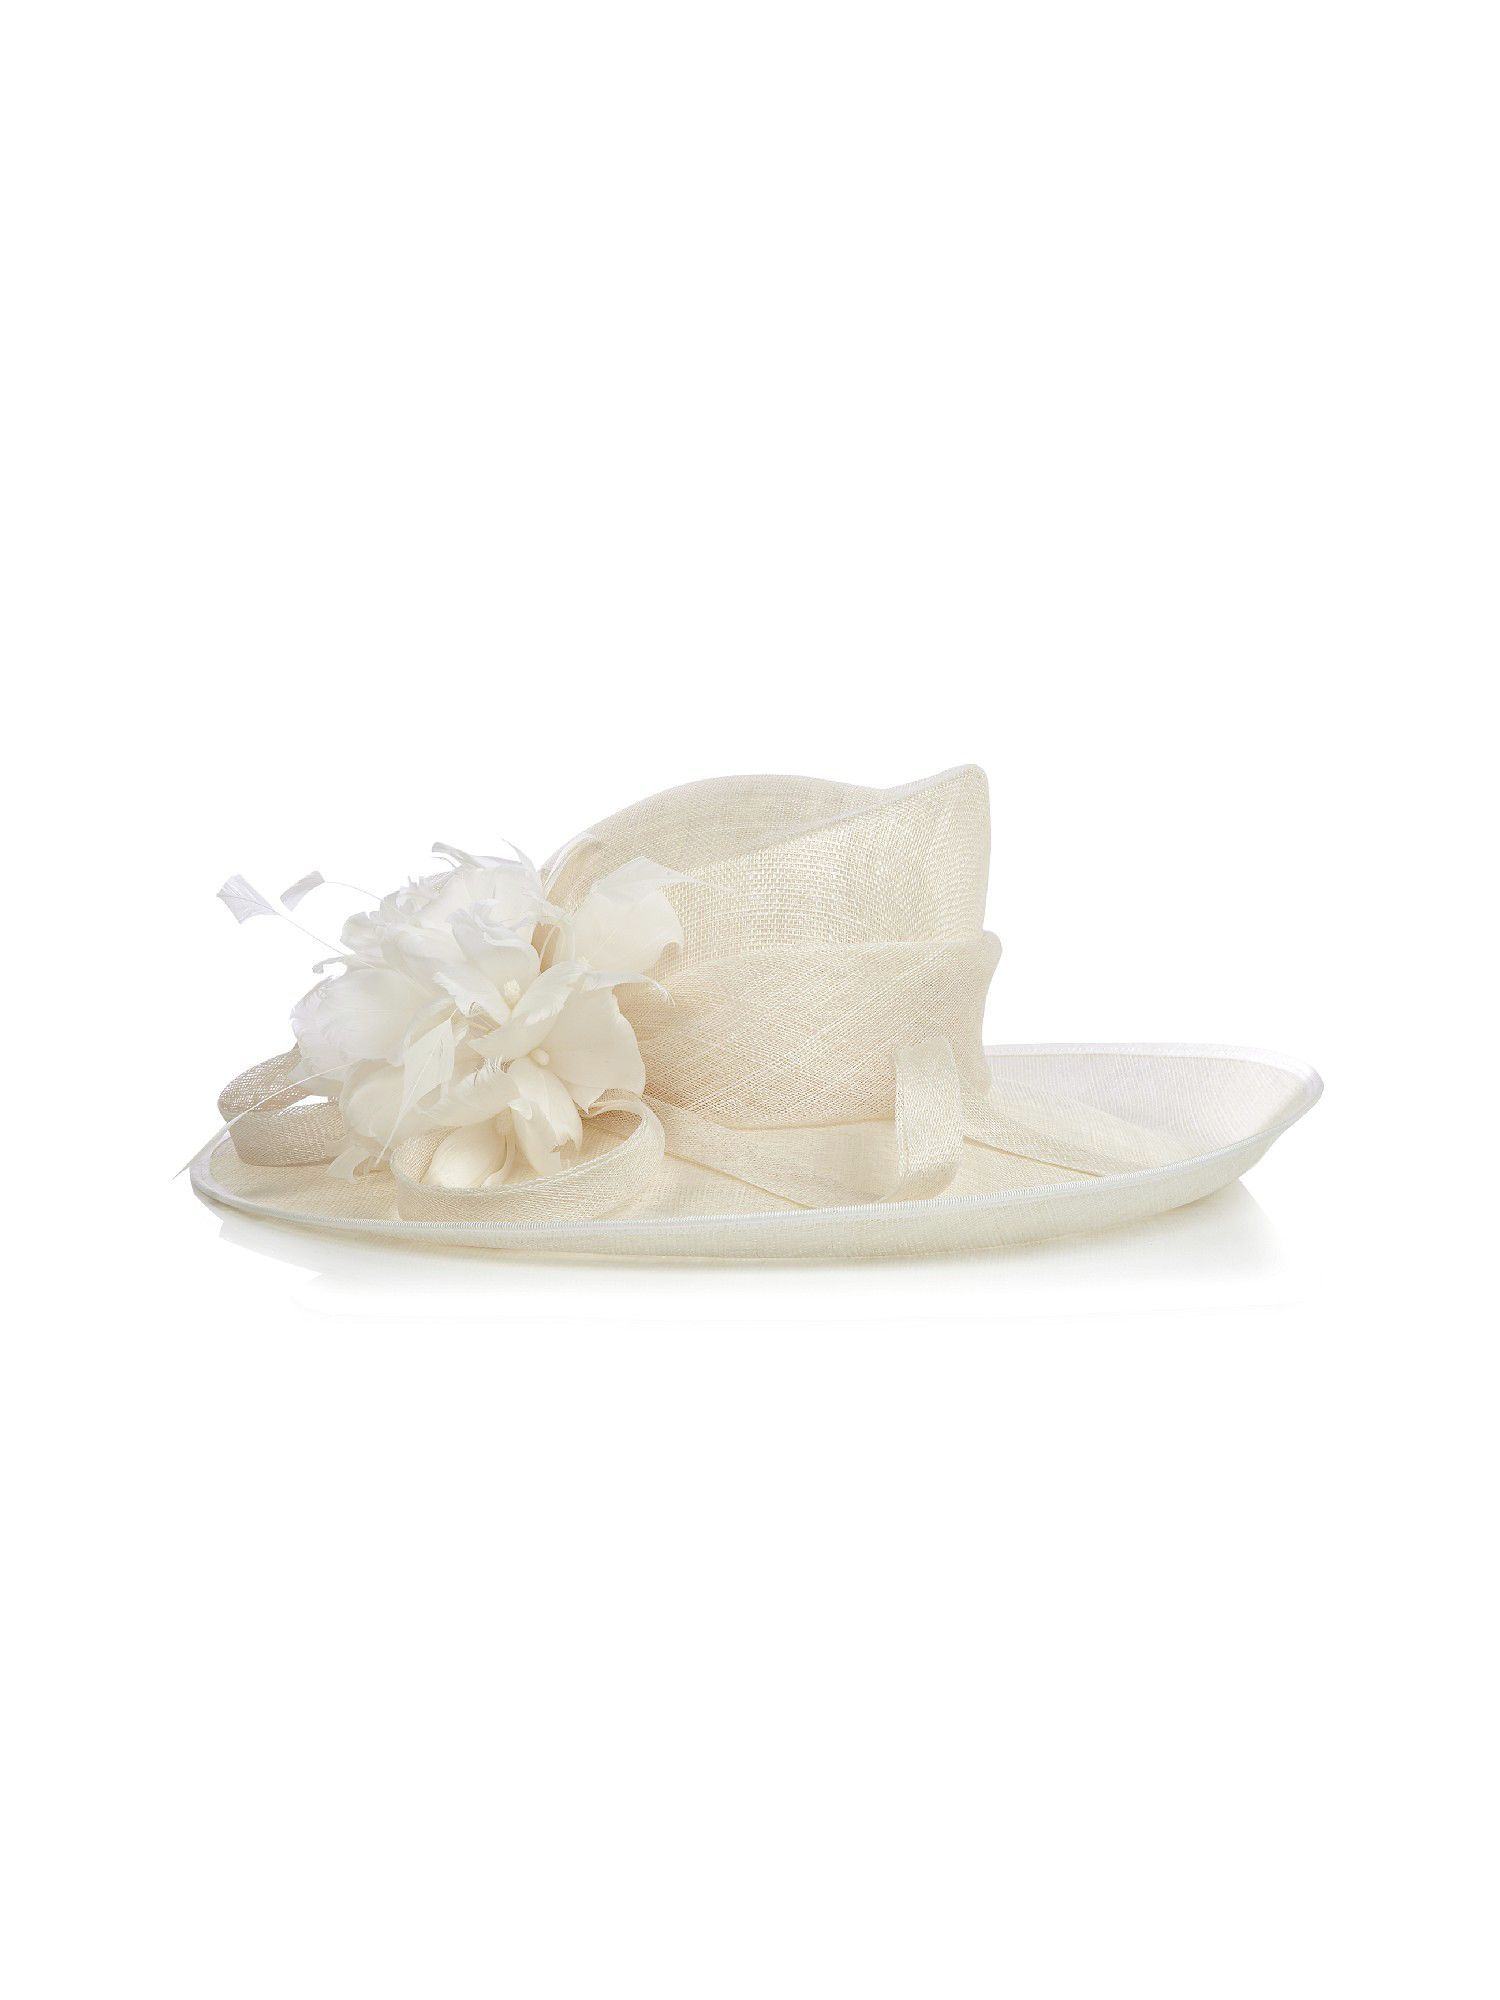 Feather flower cream hat